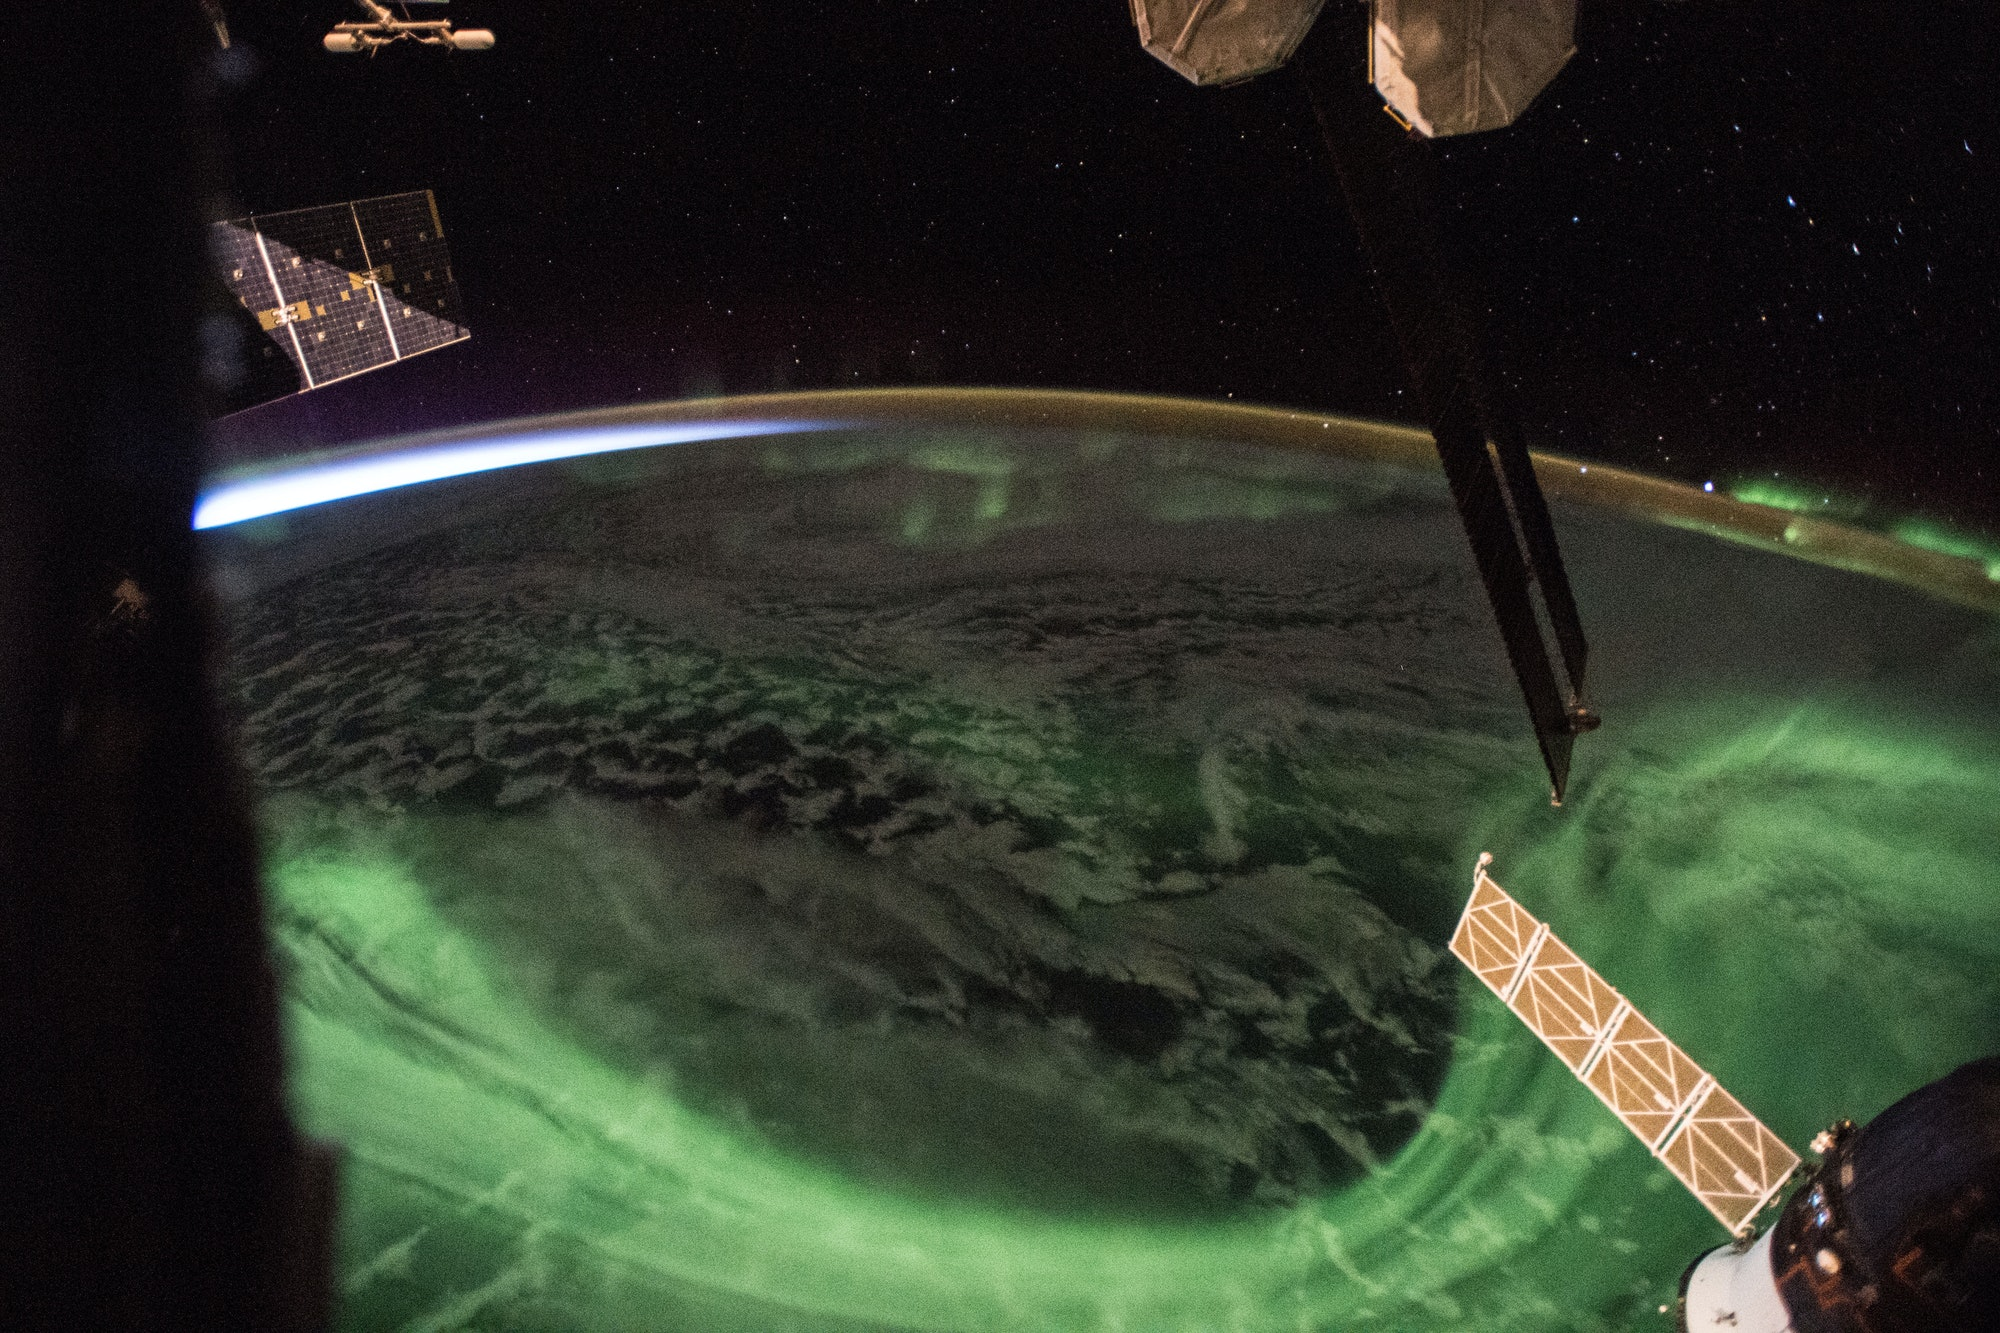 ricky arnold iss aurora picture twitter